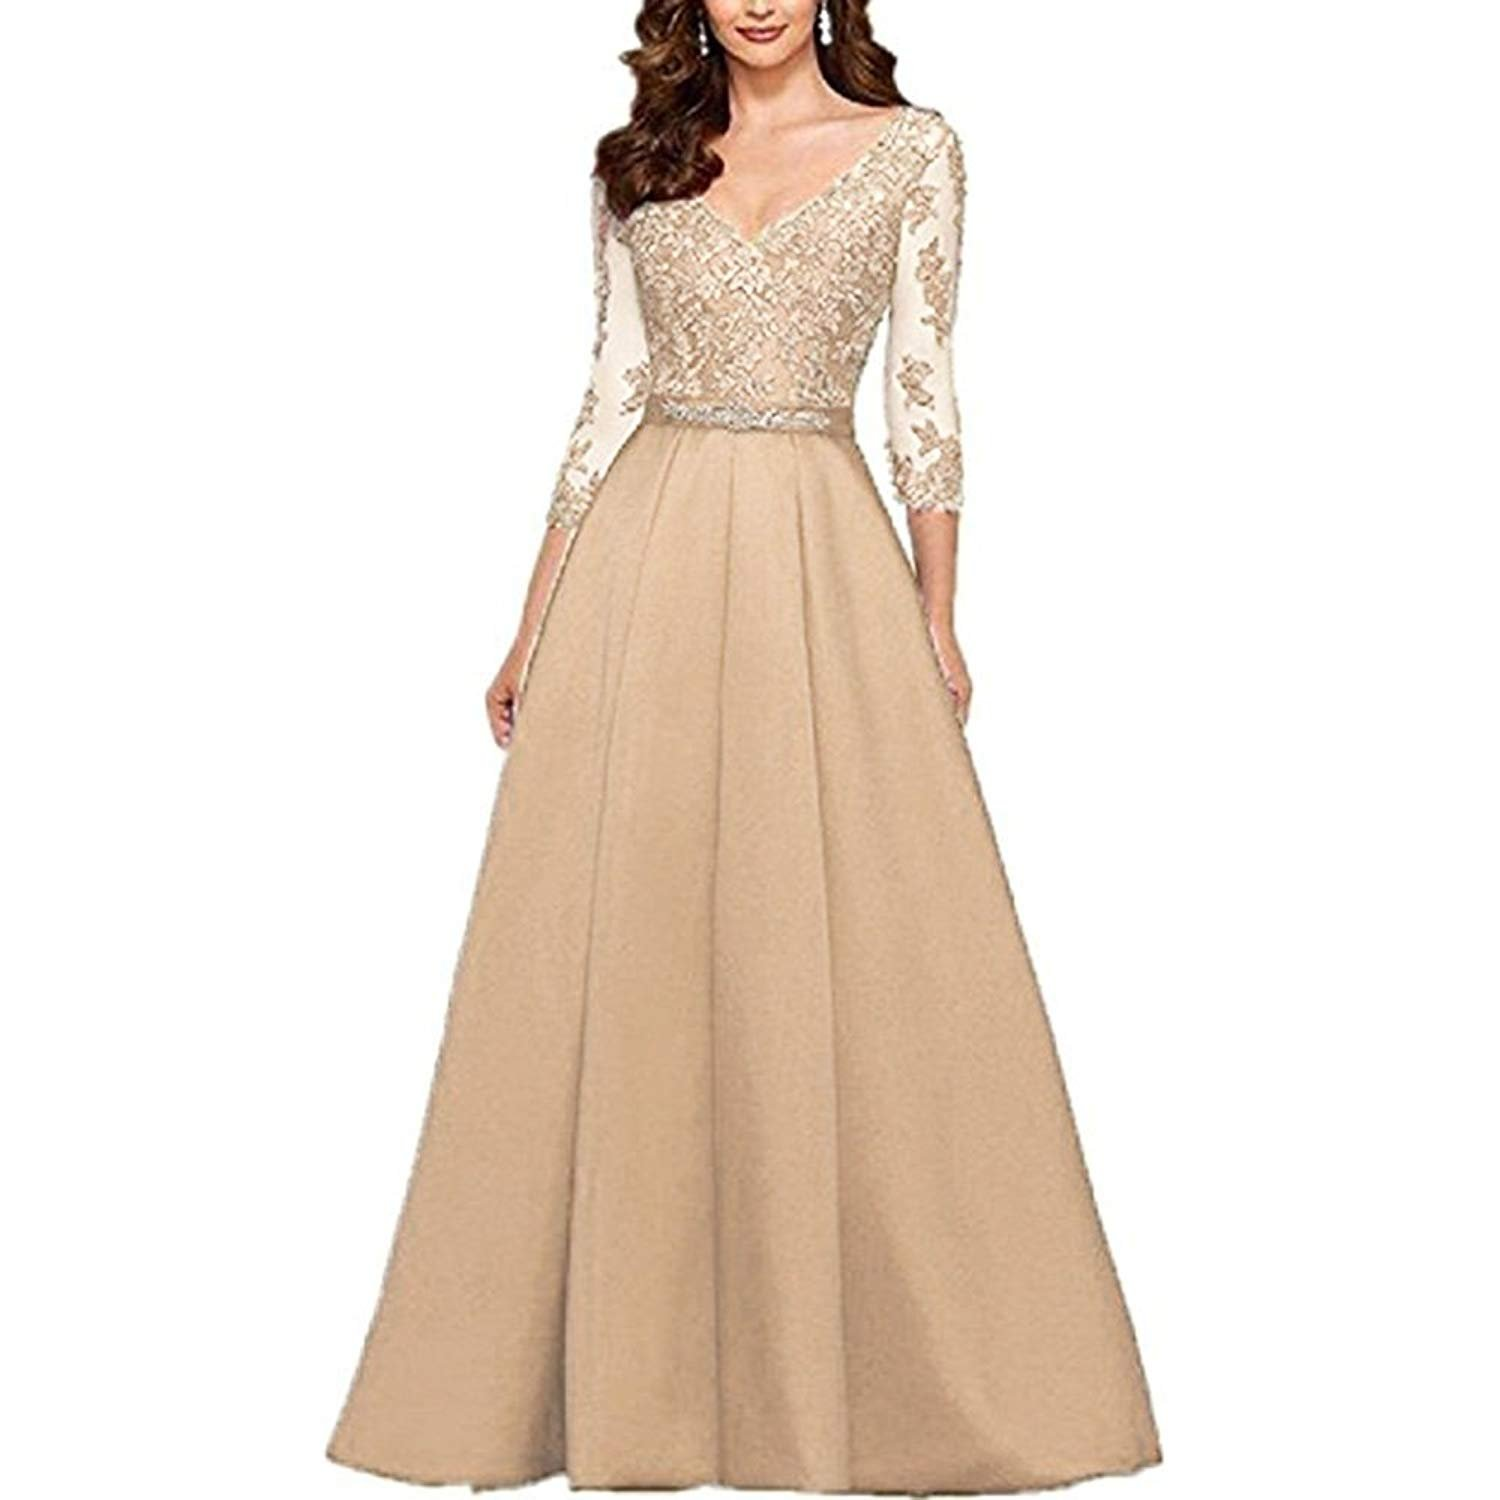 Champagne ynqnfs Women's VNeck 3 4 Sleeves Prom Dress Lace Long Mother of The Bride Dresses